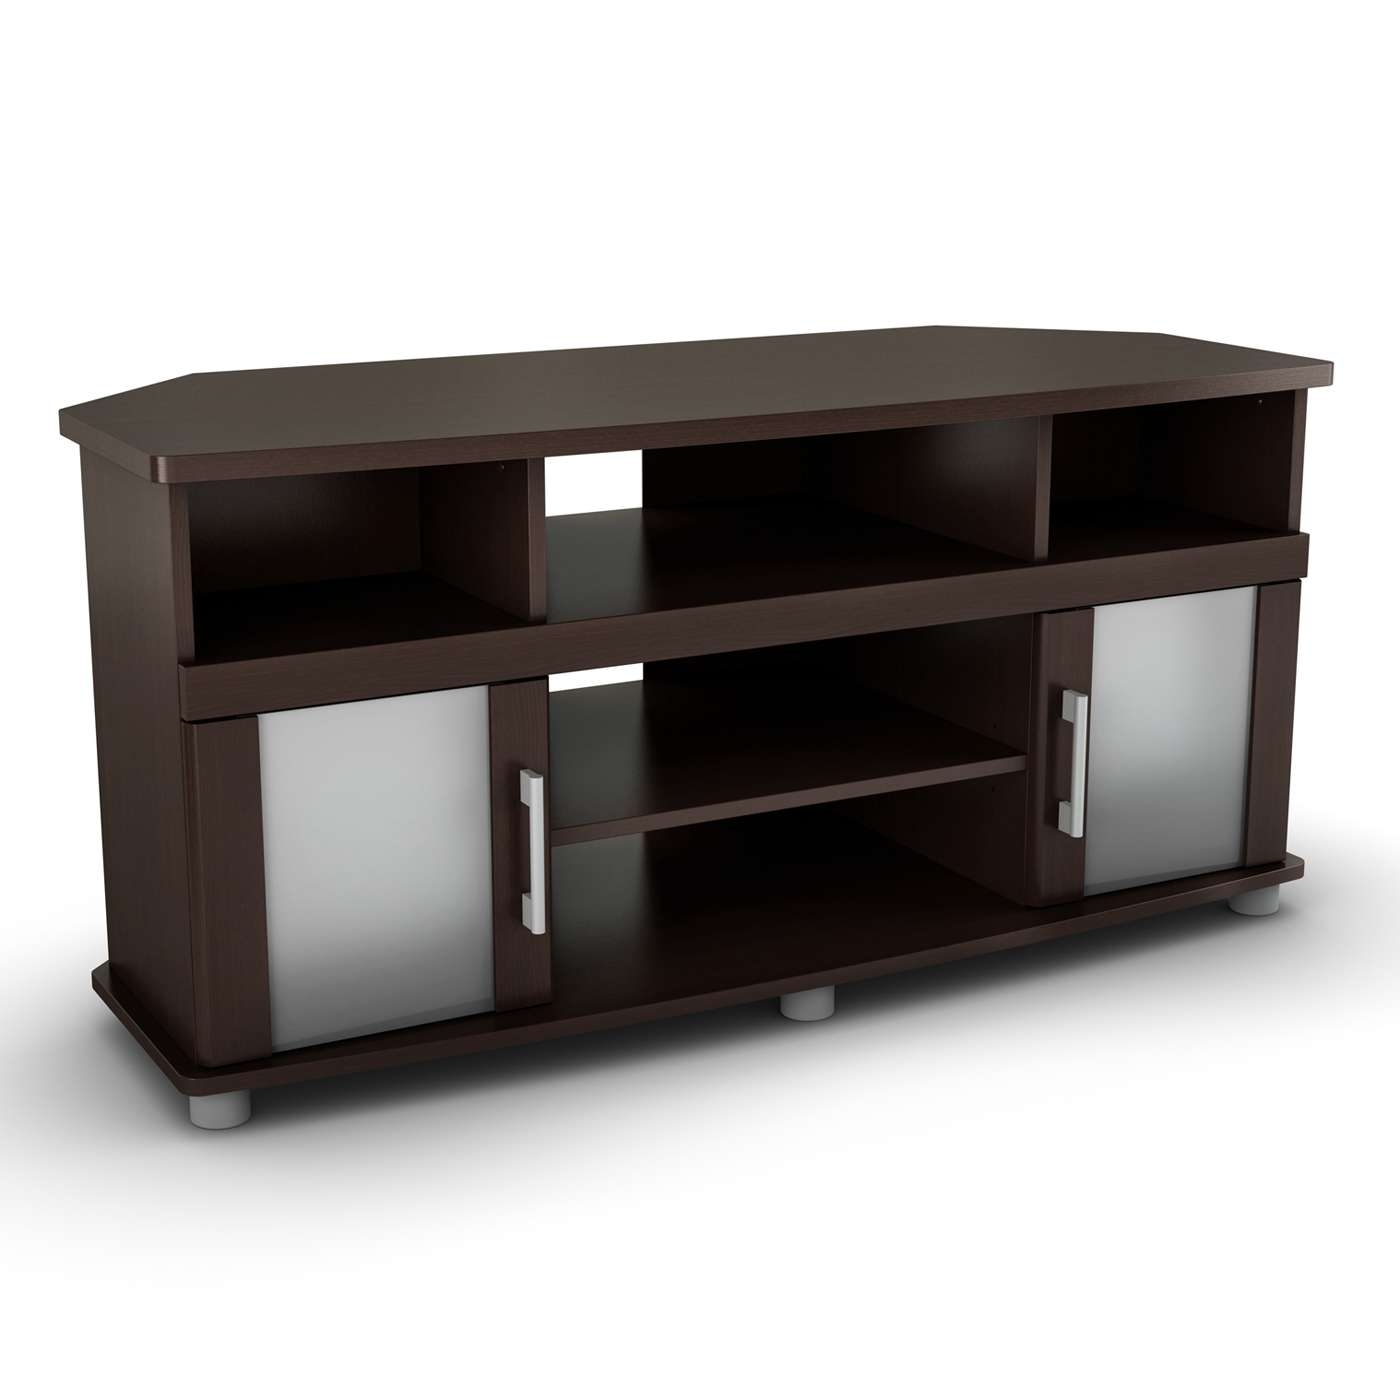 Tv Stand : Formidable Corner Tv Stand Image Inspirations Electric With Low Corner Tv Cabinets (View 18 of 20)